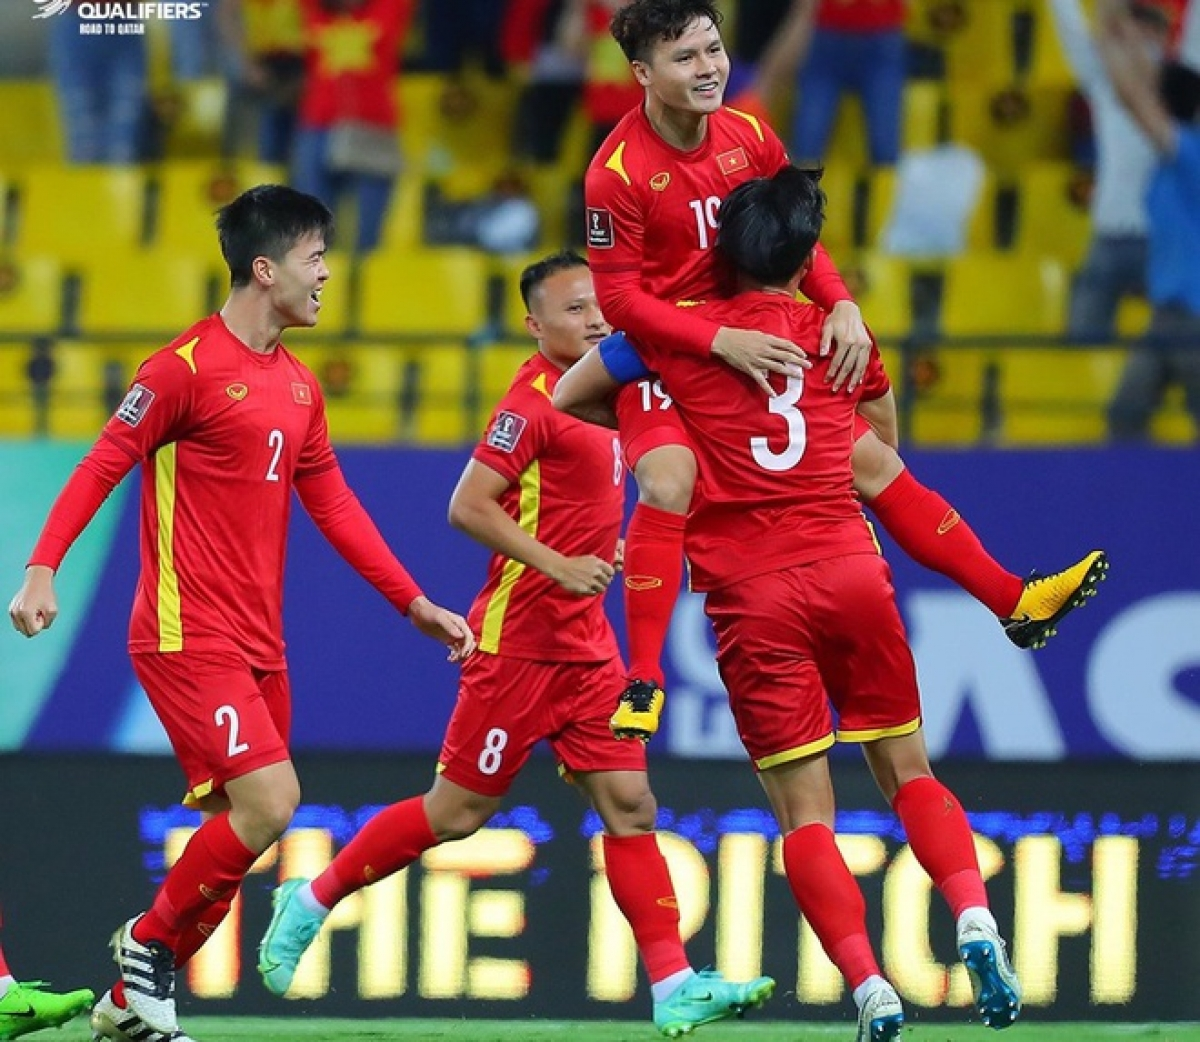 Midfielder Nguyen Quang Hai makes a sumptuous goal in the third minute, opening the scoreboardin the match against Saudi Arabia as part of World Cup qualifiers. (Photo: AFC)